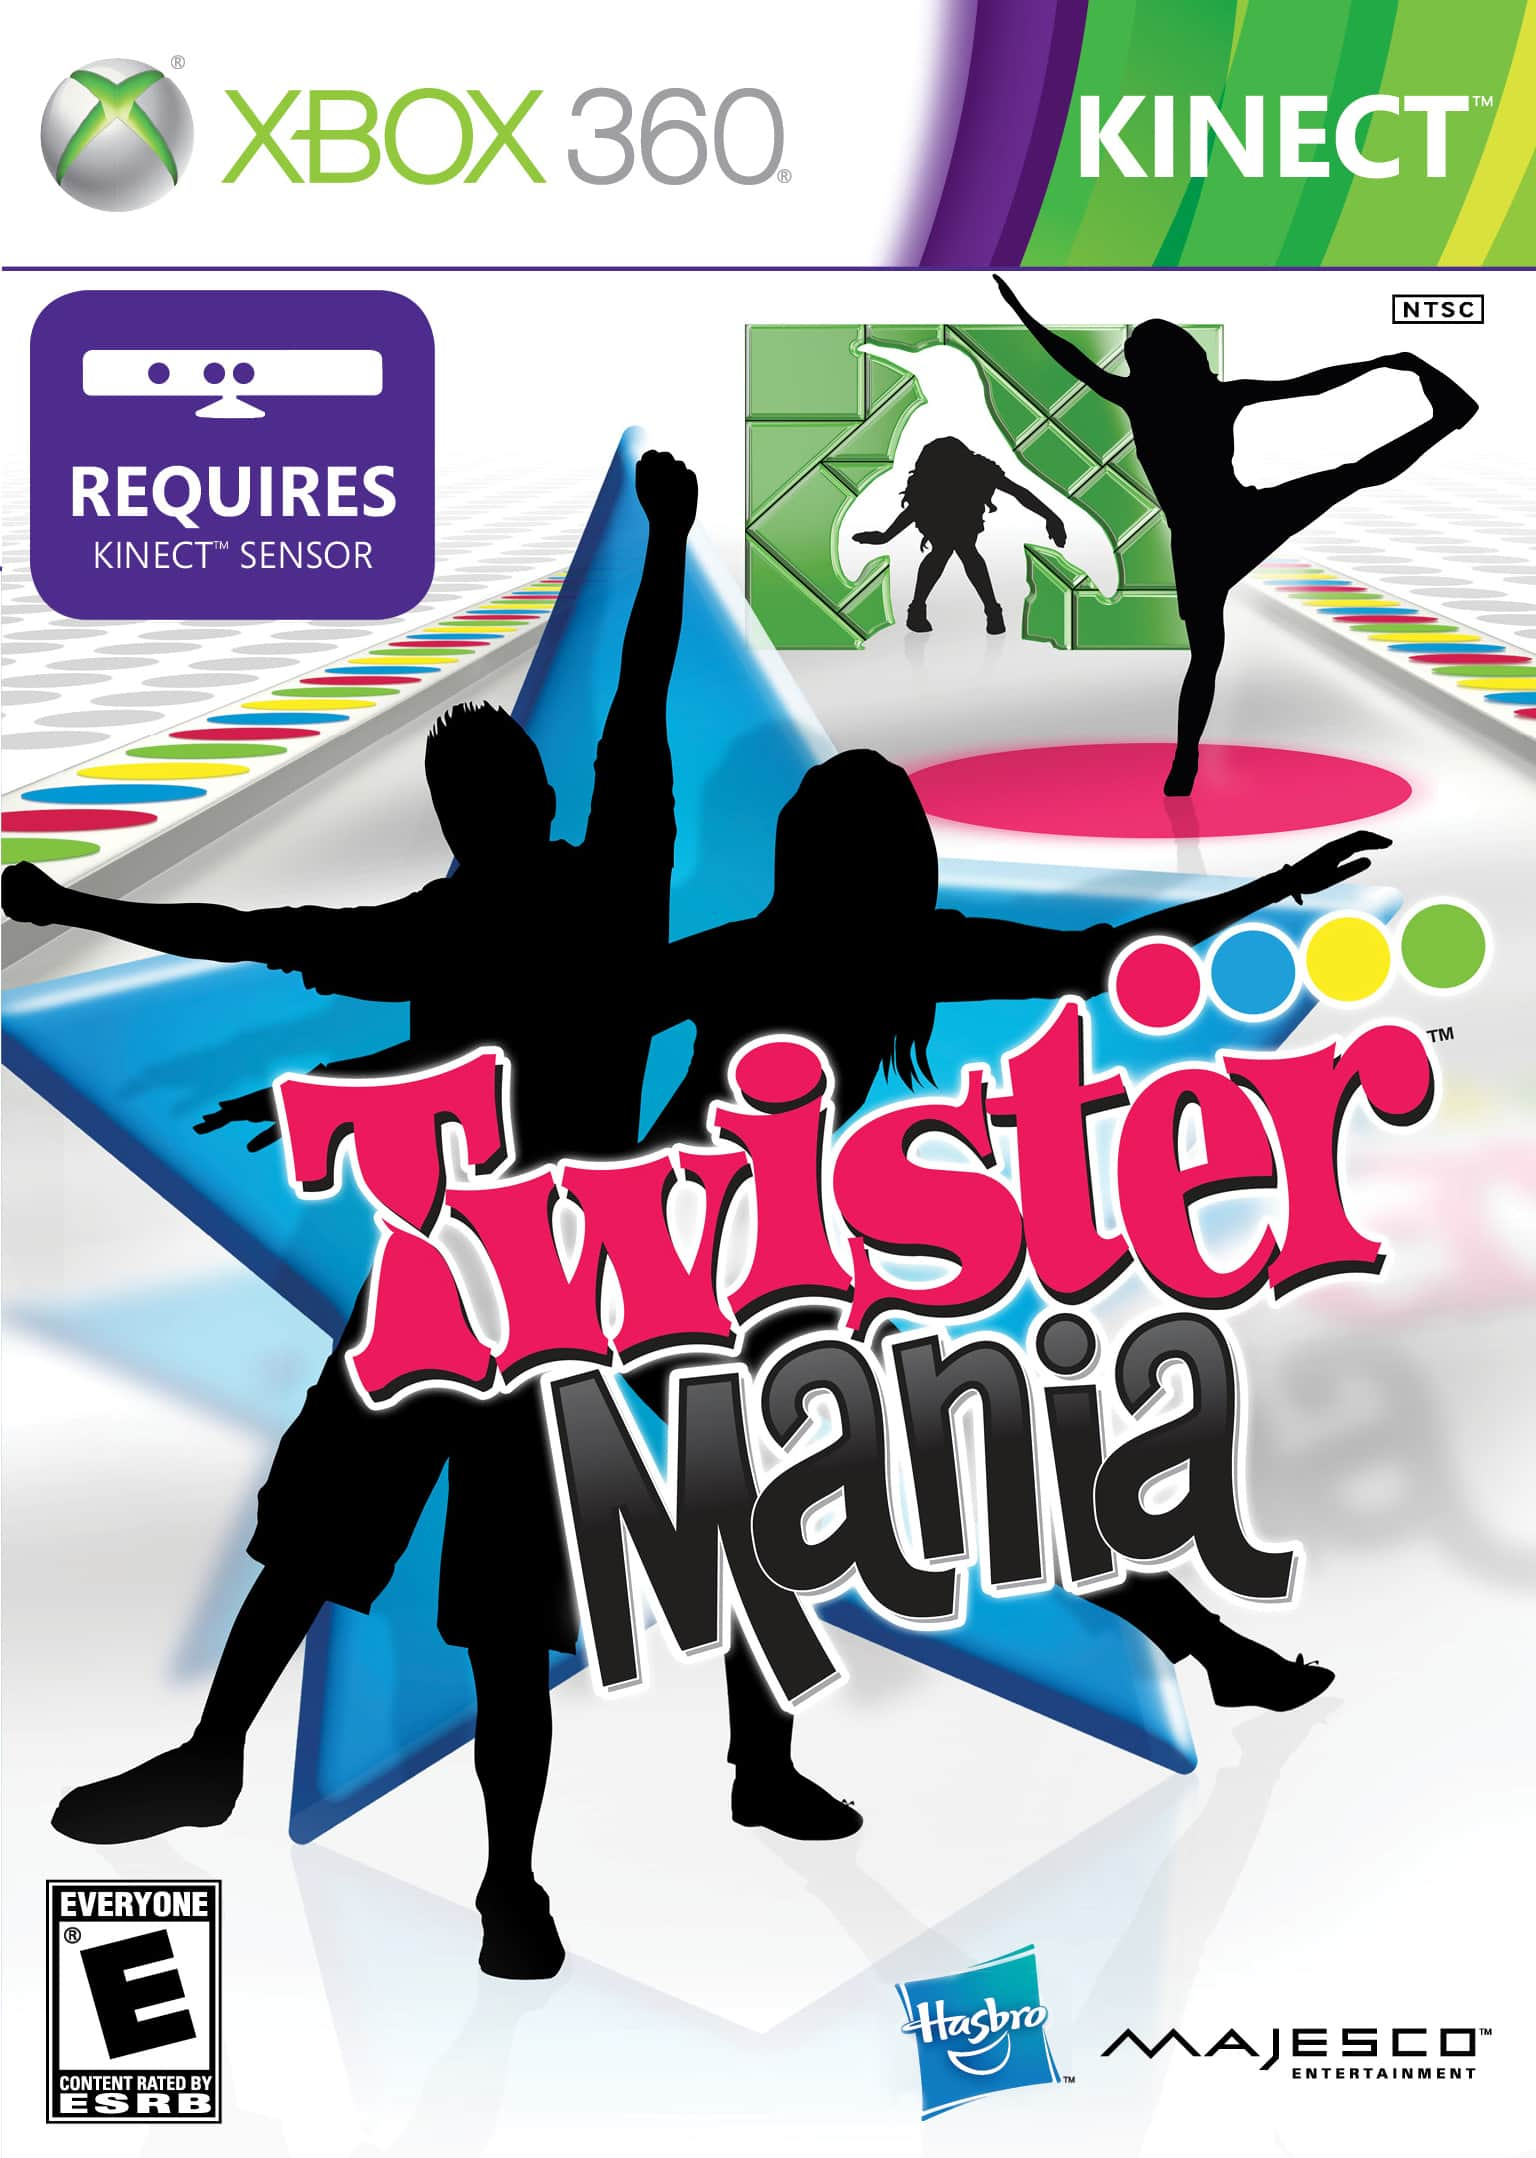 Twister™Mania is coming to the XBox! {press release}